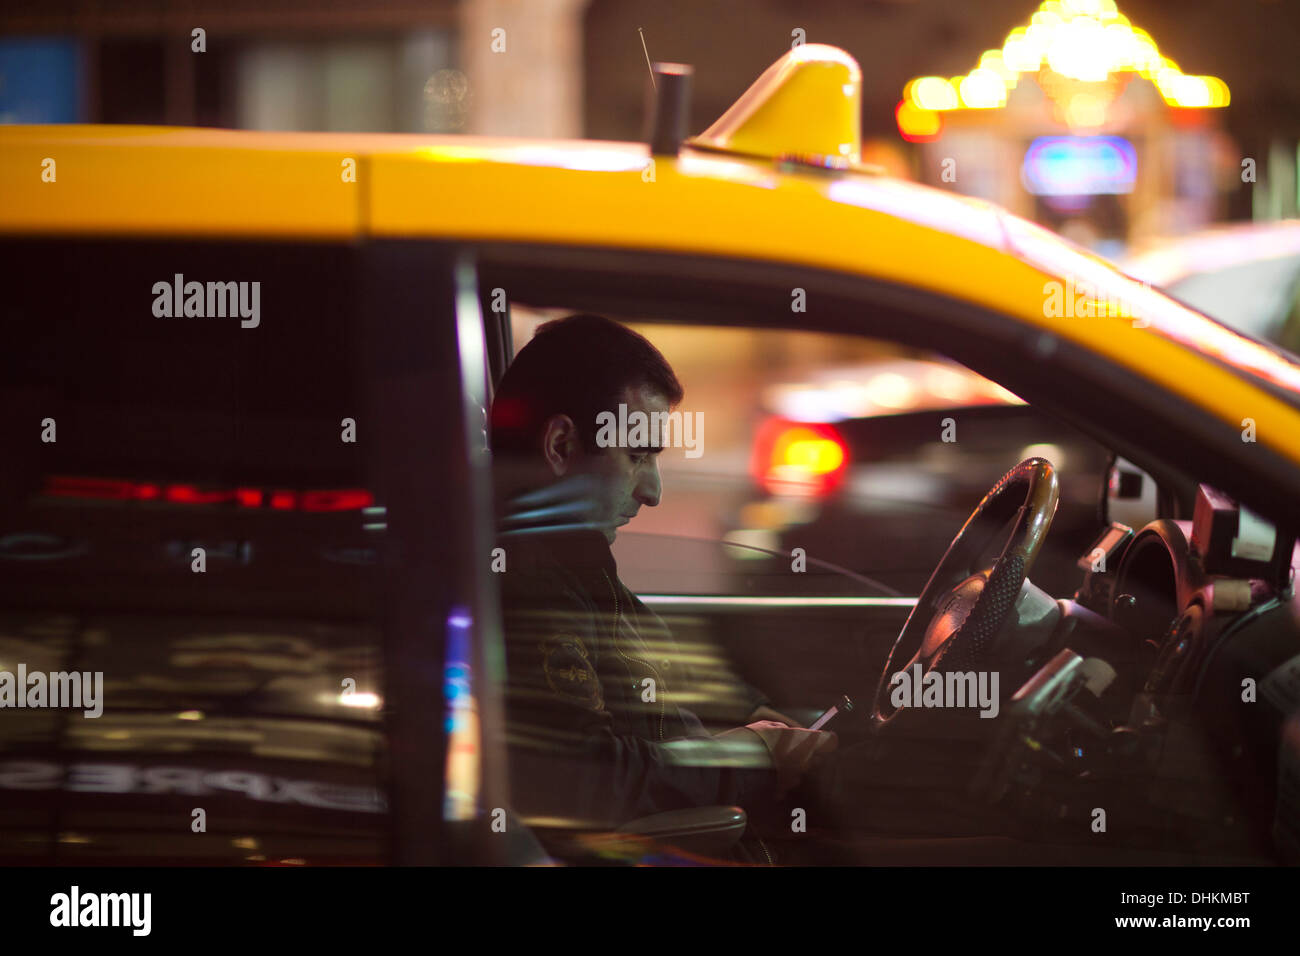 taxi driver, Hollywood Boulevard, Hollywood, Los Angeles, California, United States of America - Stock Image